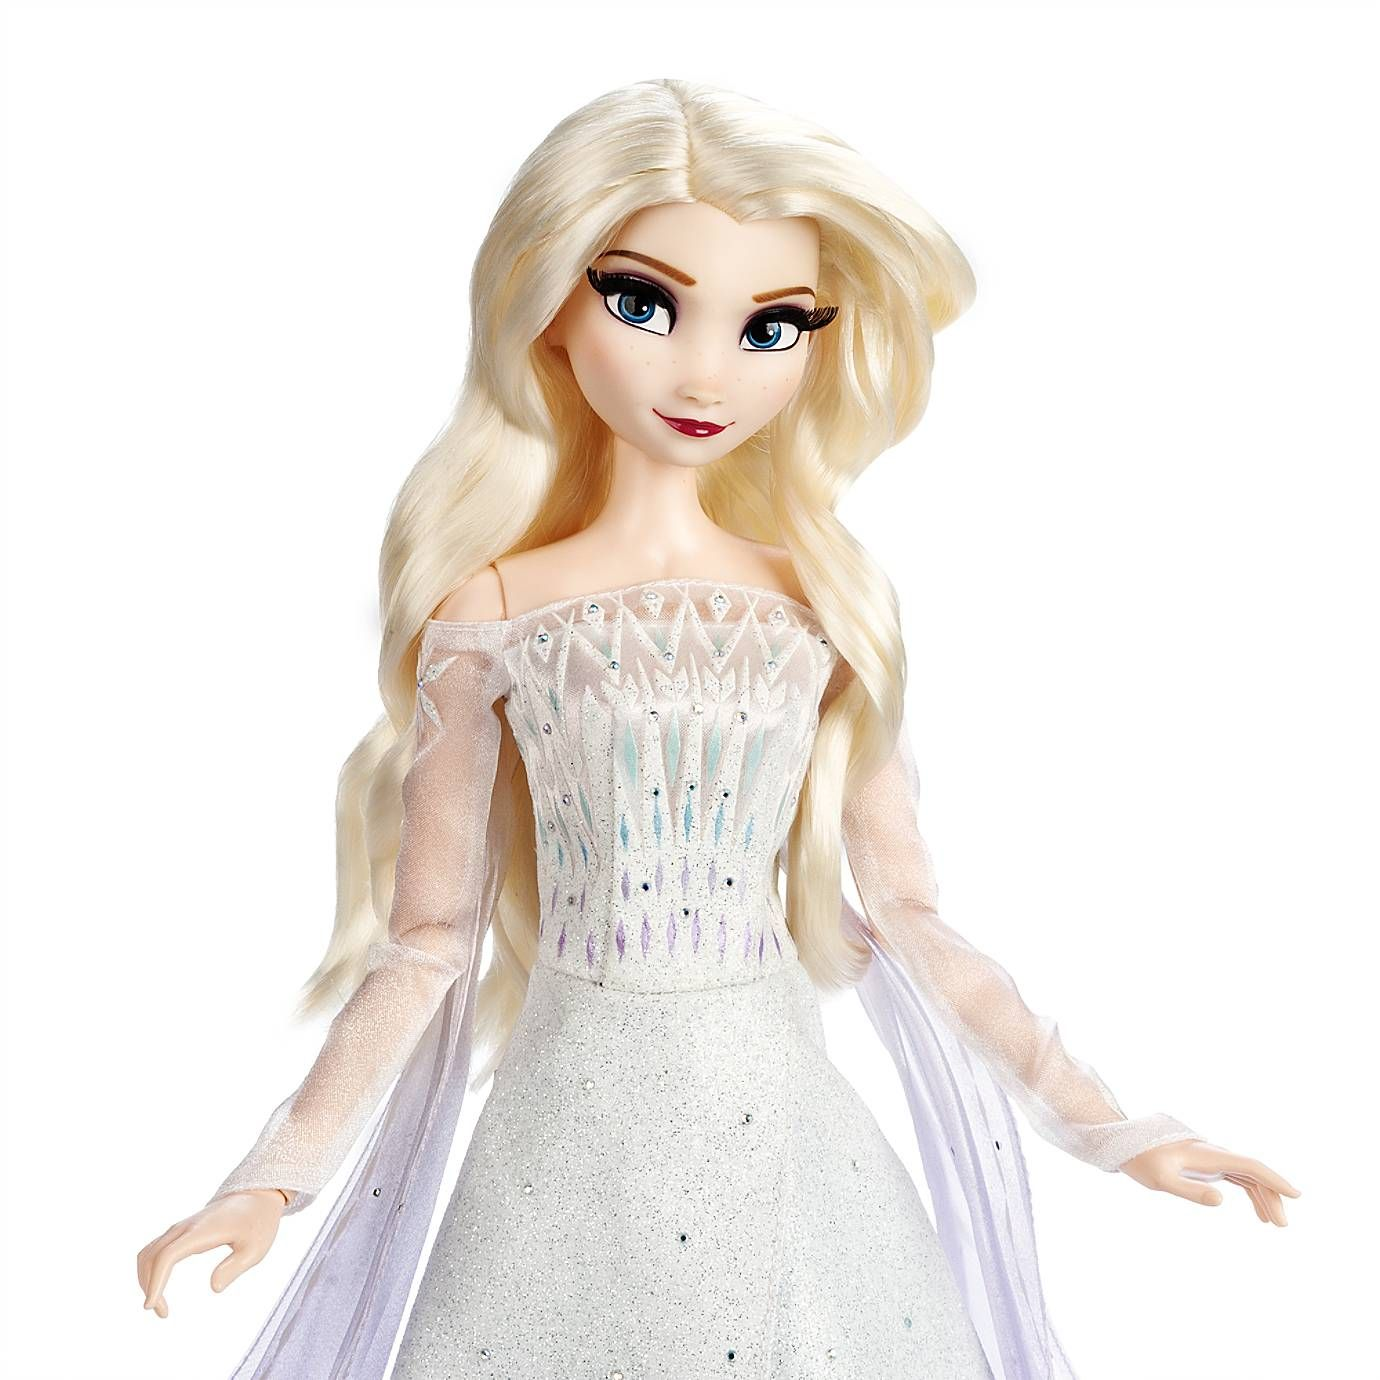 Elsa The Snow Queen Limited Edition Doll Frozen 2 17 Shopdisney In 2020 Snow Queen Snow Queen Dress Limited Edition Dress